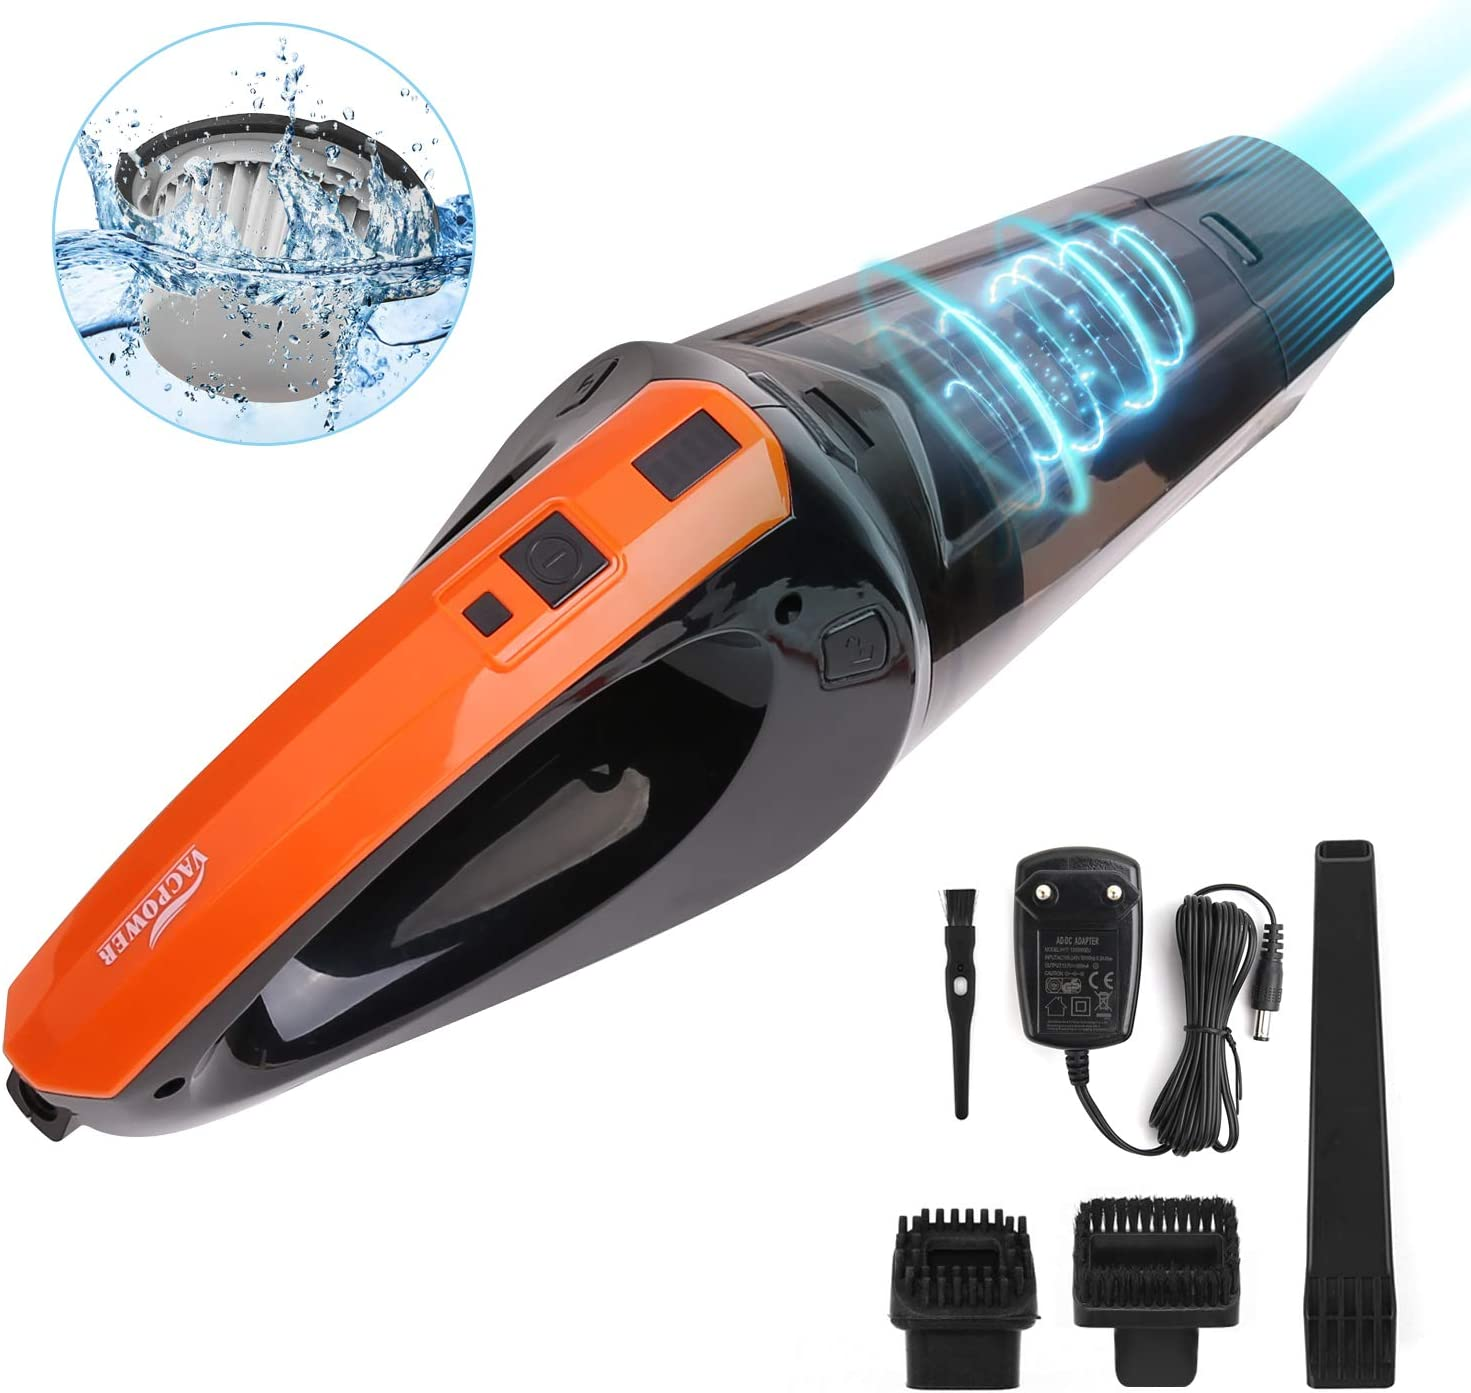 VACPOWER Handheld Vacuum Cleaner Cordless, Portable Hand Vacuum Powered by Li-ion Battery Rechargeable Quick Charge Tech, Mini Vacuum Cleaner with Strong Suction for Pet Hair, Home and Car Cleaning